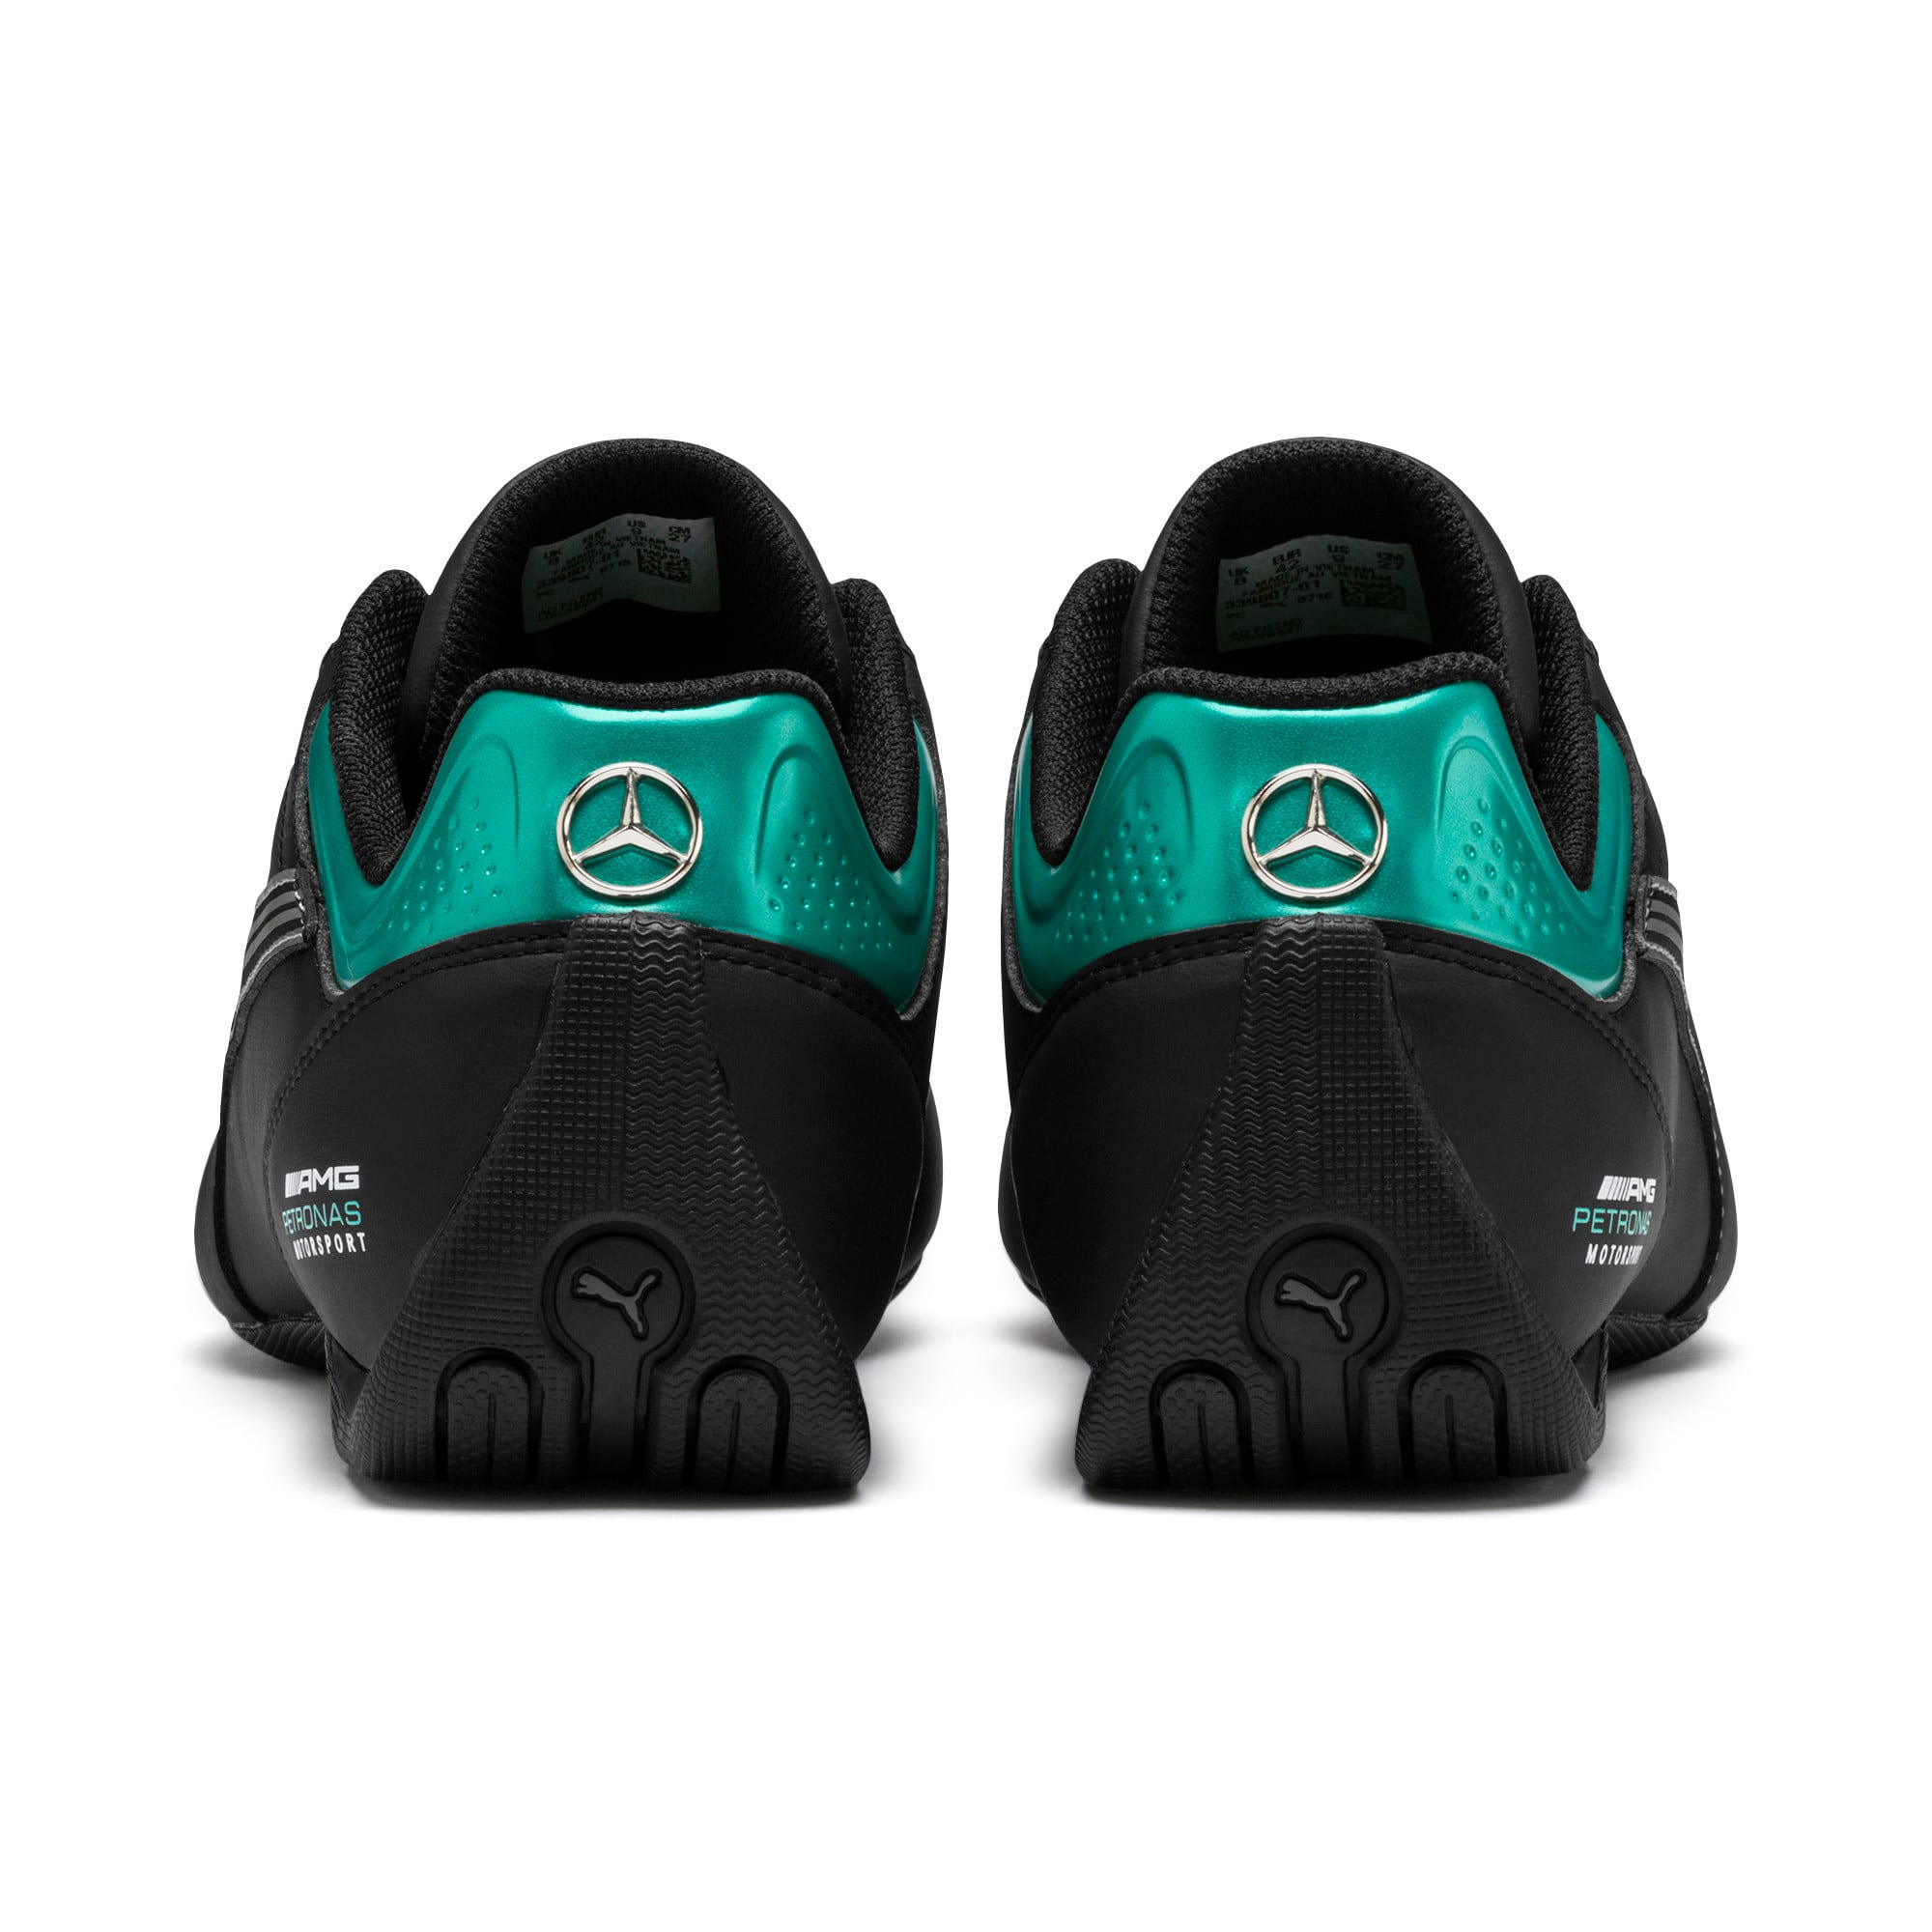 Mercedes AMG Petronas Future Kart Cat Shoes, Puma Black-Smoked Pearl, large